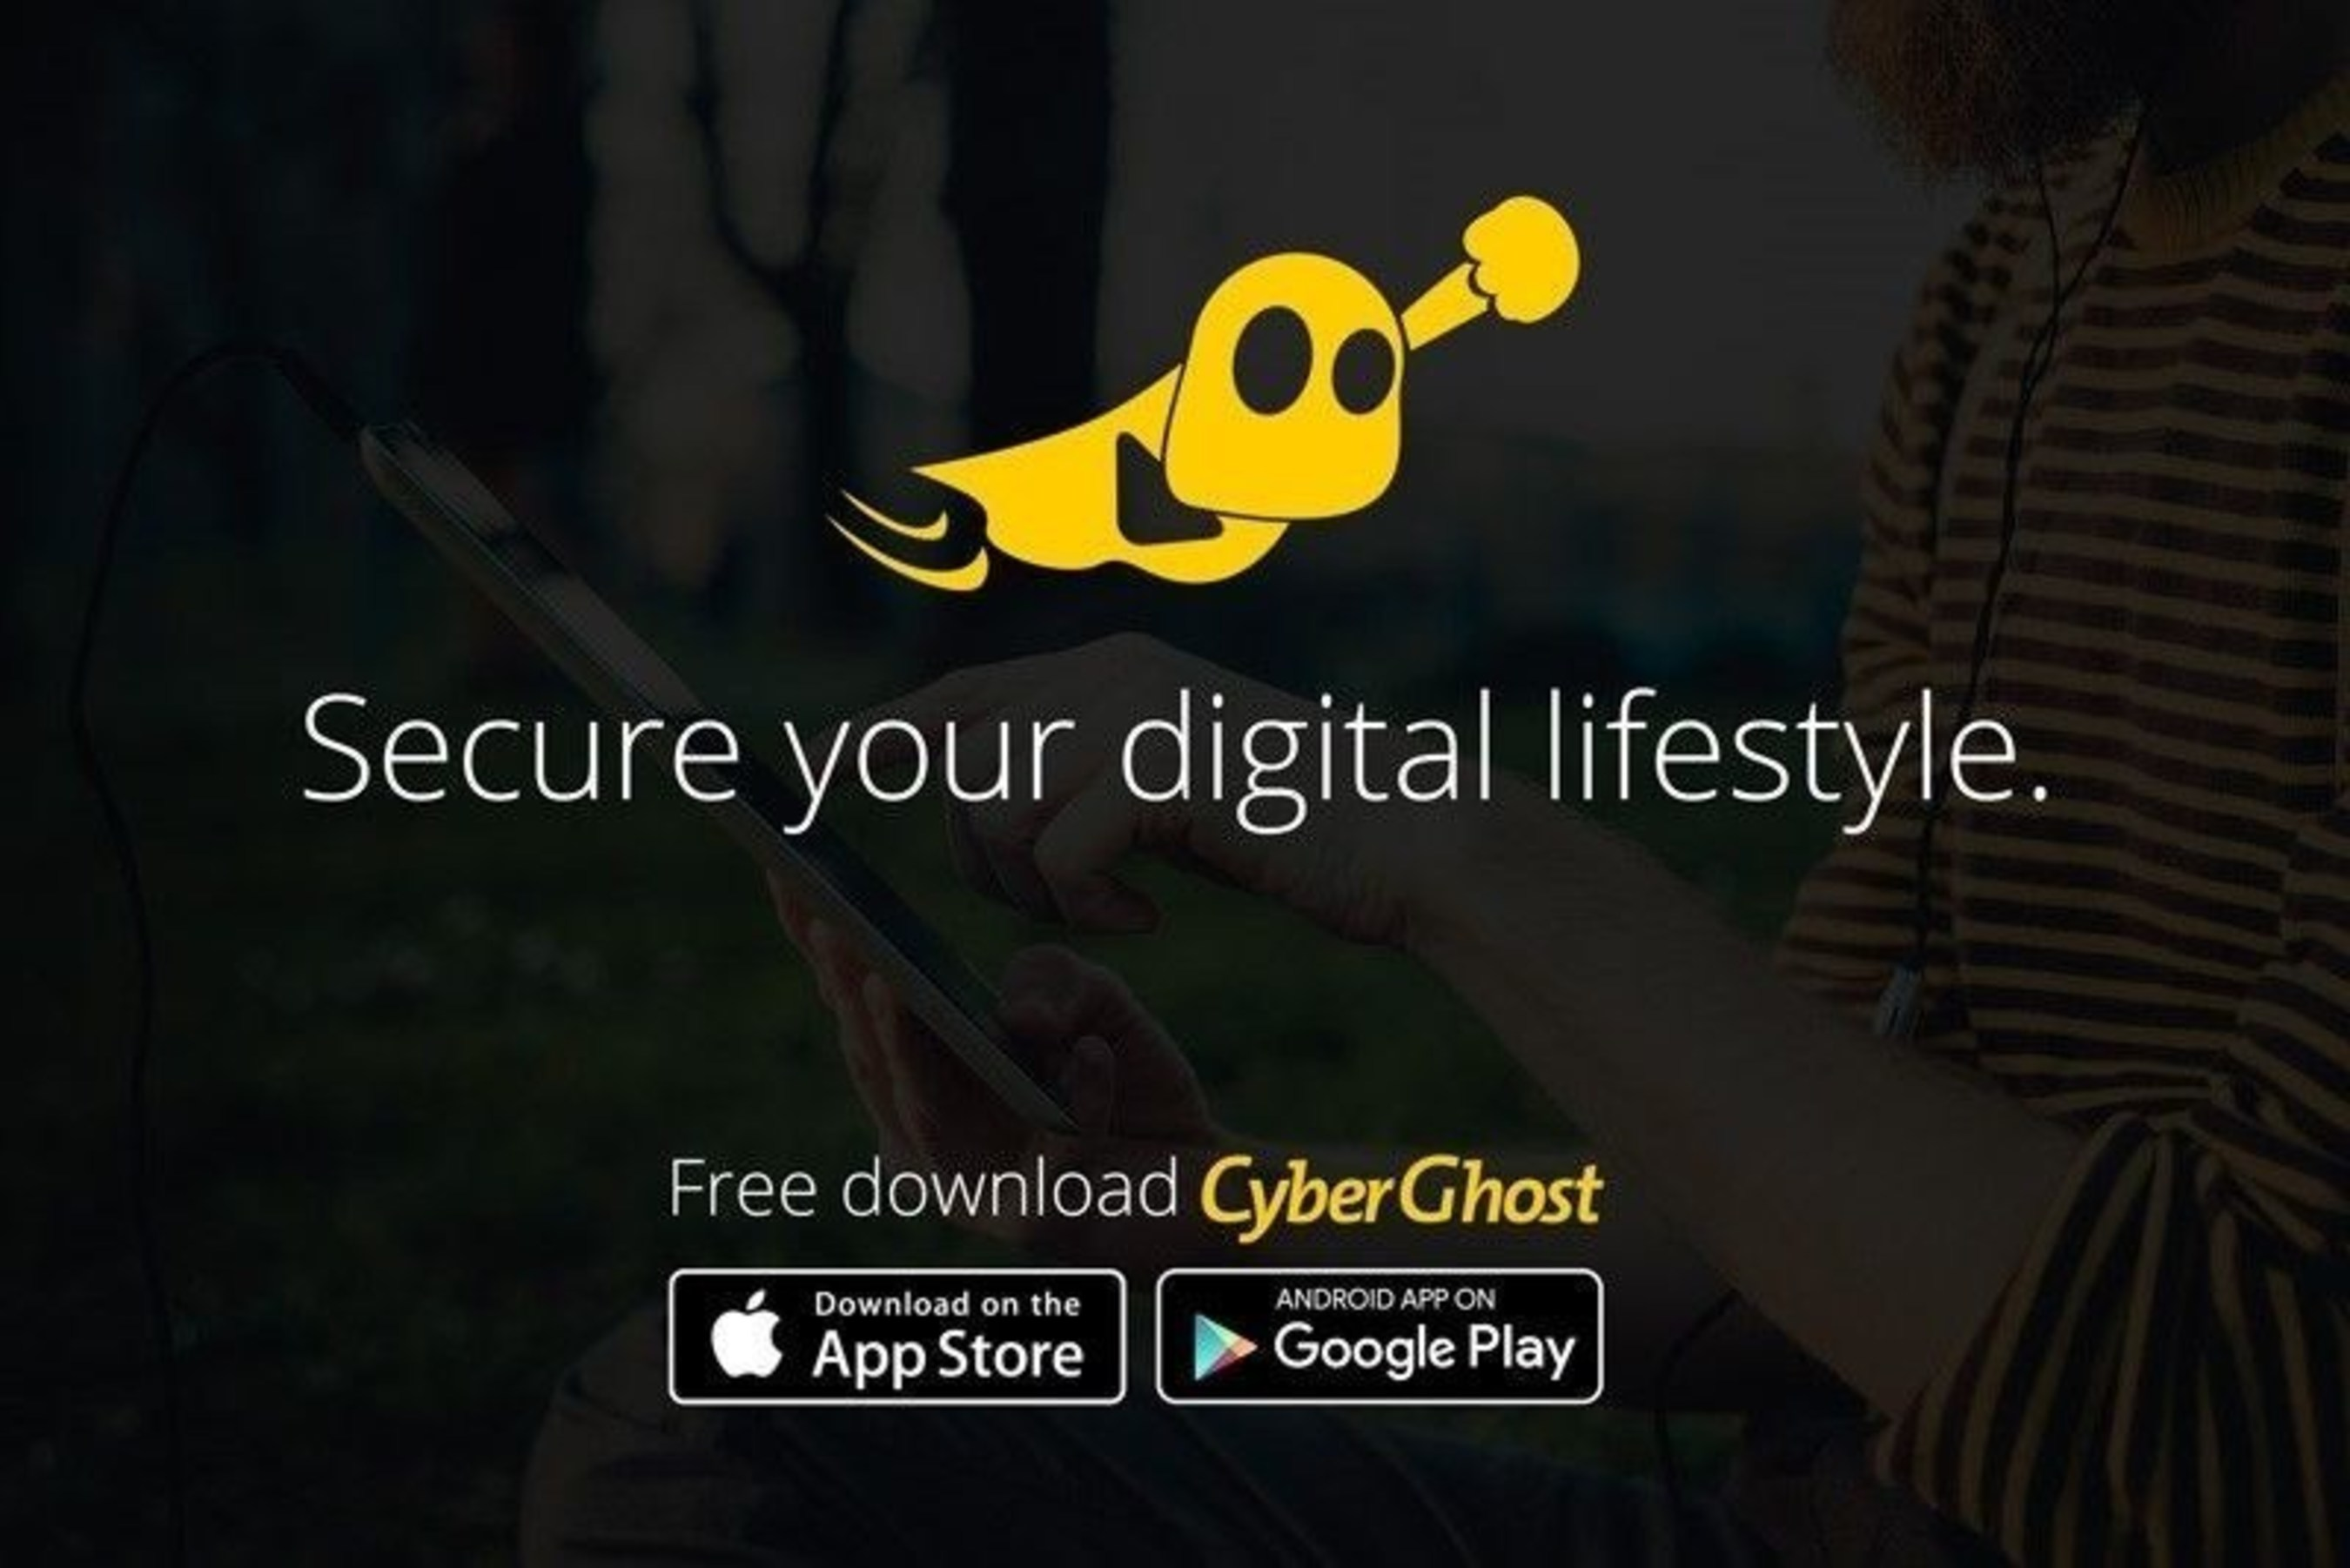 CyberGhost 6 0 for Windows: The Complete One-click VPN Solution to